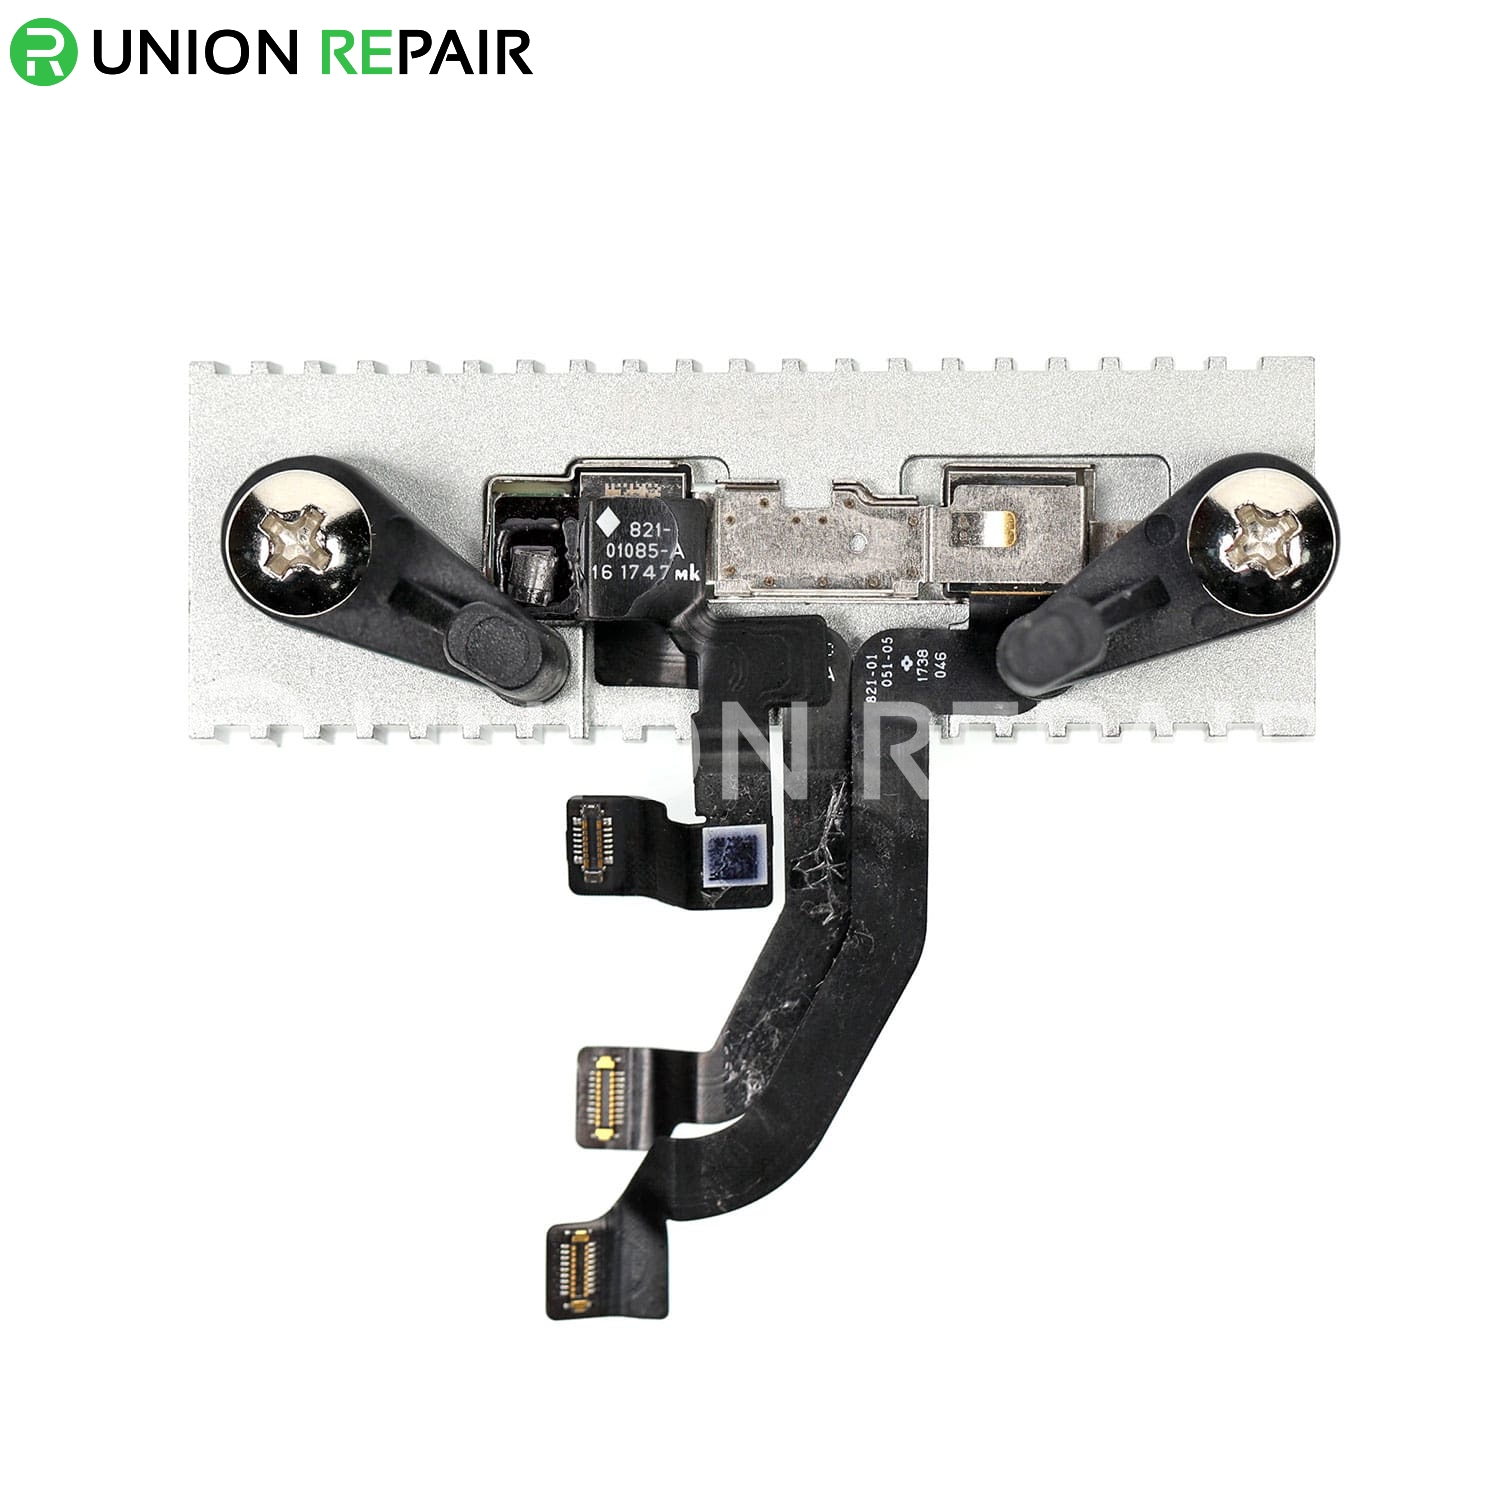 LuBan T1 Front Facing Camera Fixture for Dot Projector Repair